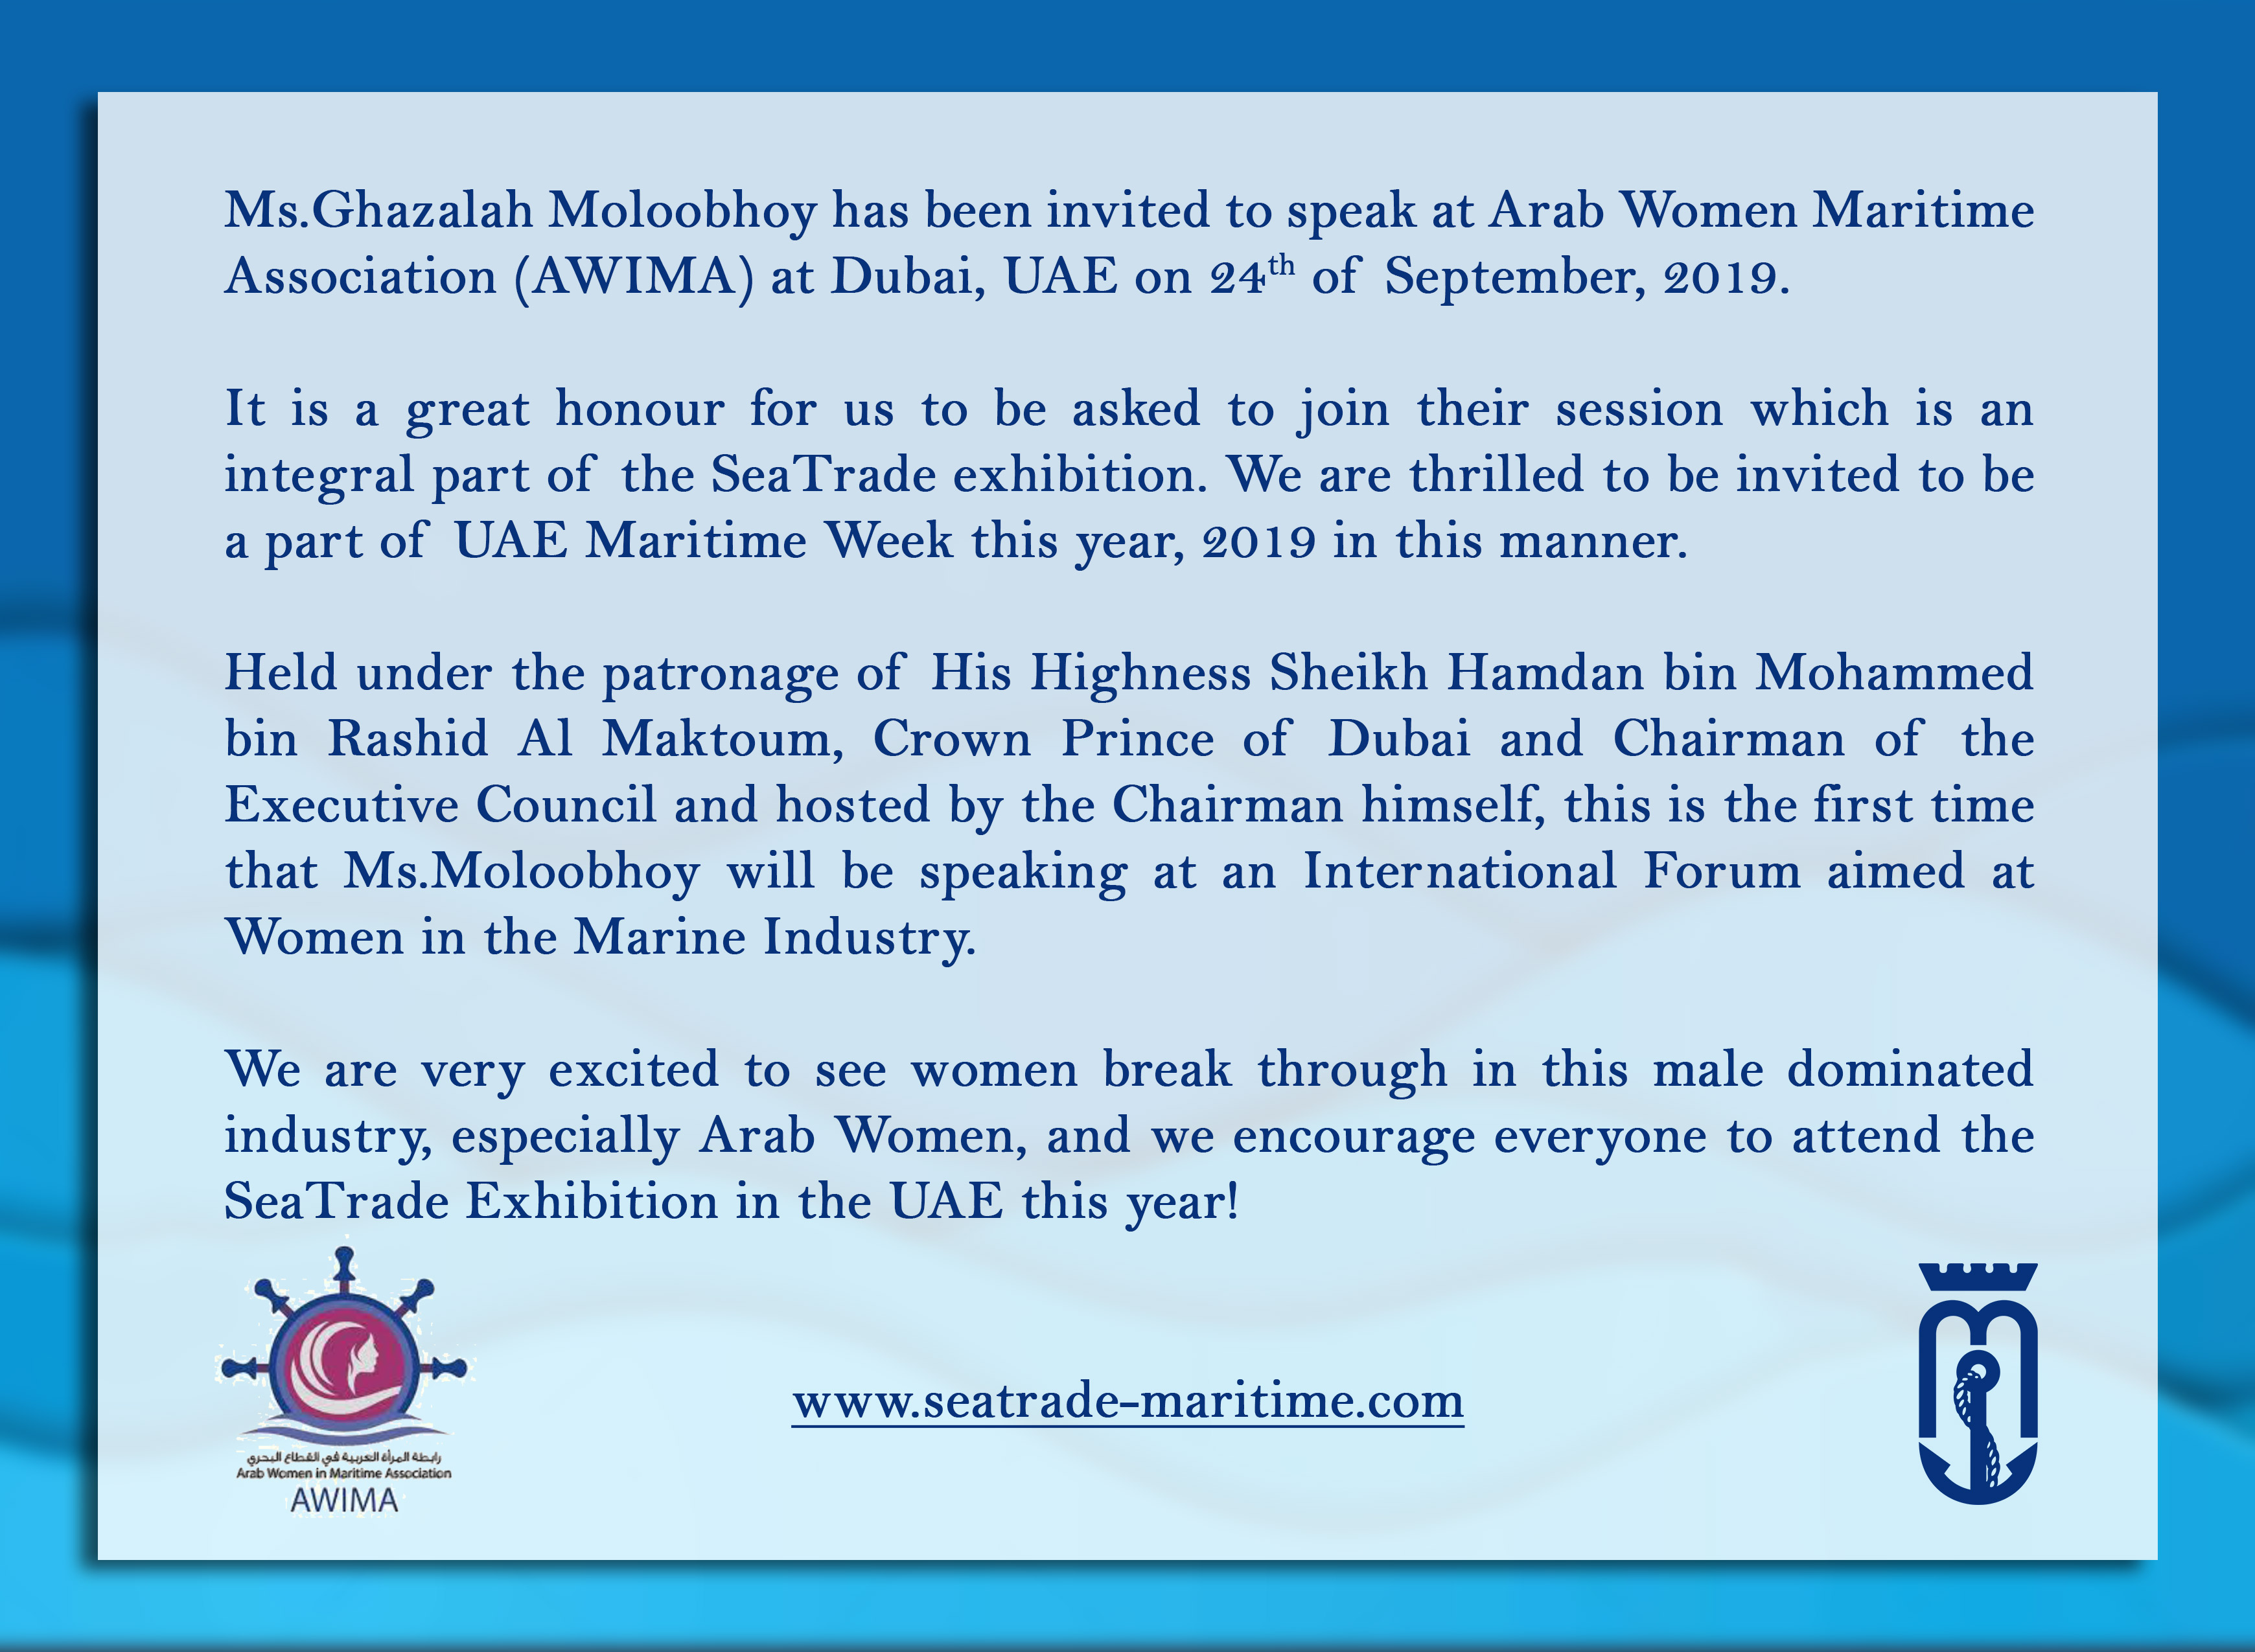 Invitation to speak at Arab Women in Maritime Association (AWIMA)